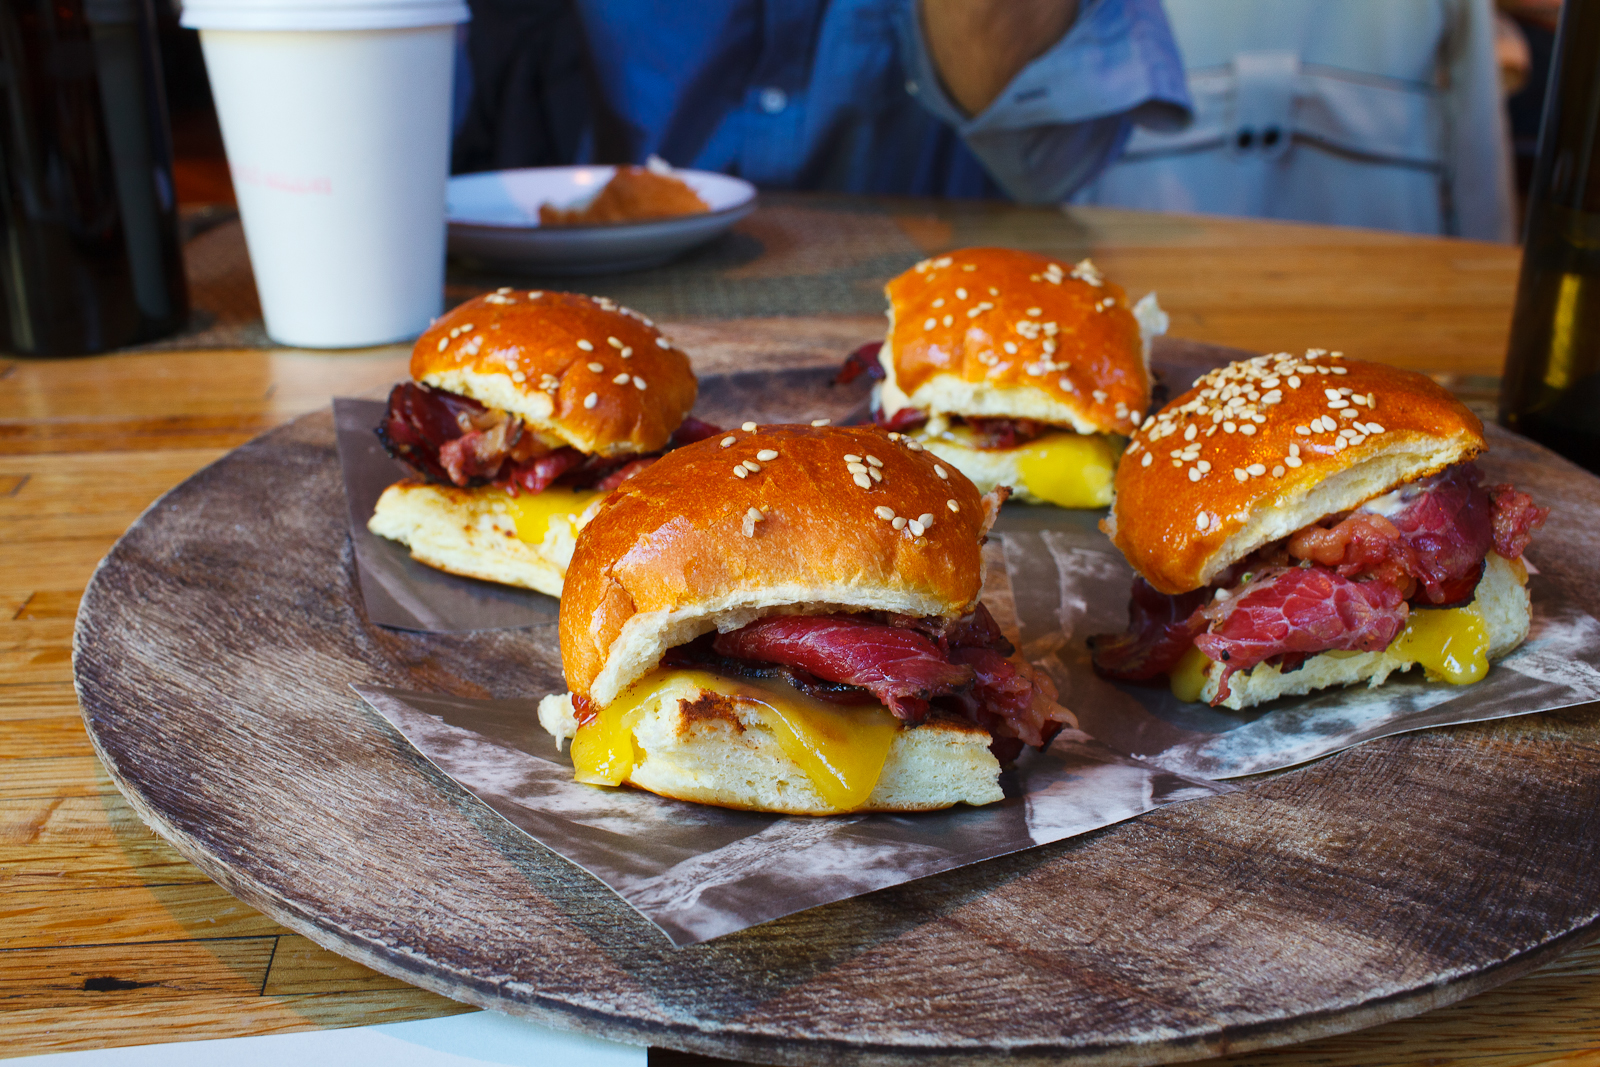 Slices of 45-day dry aged 3-day cured beef with a garlic and black pepper crust smoked for 16-hours on a benne buttermilk bun, cheese, tomato aïoli, garlic